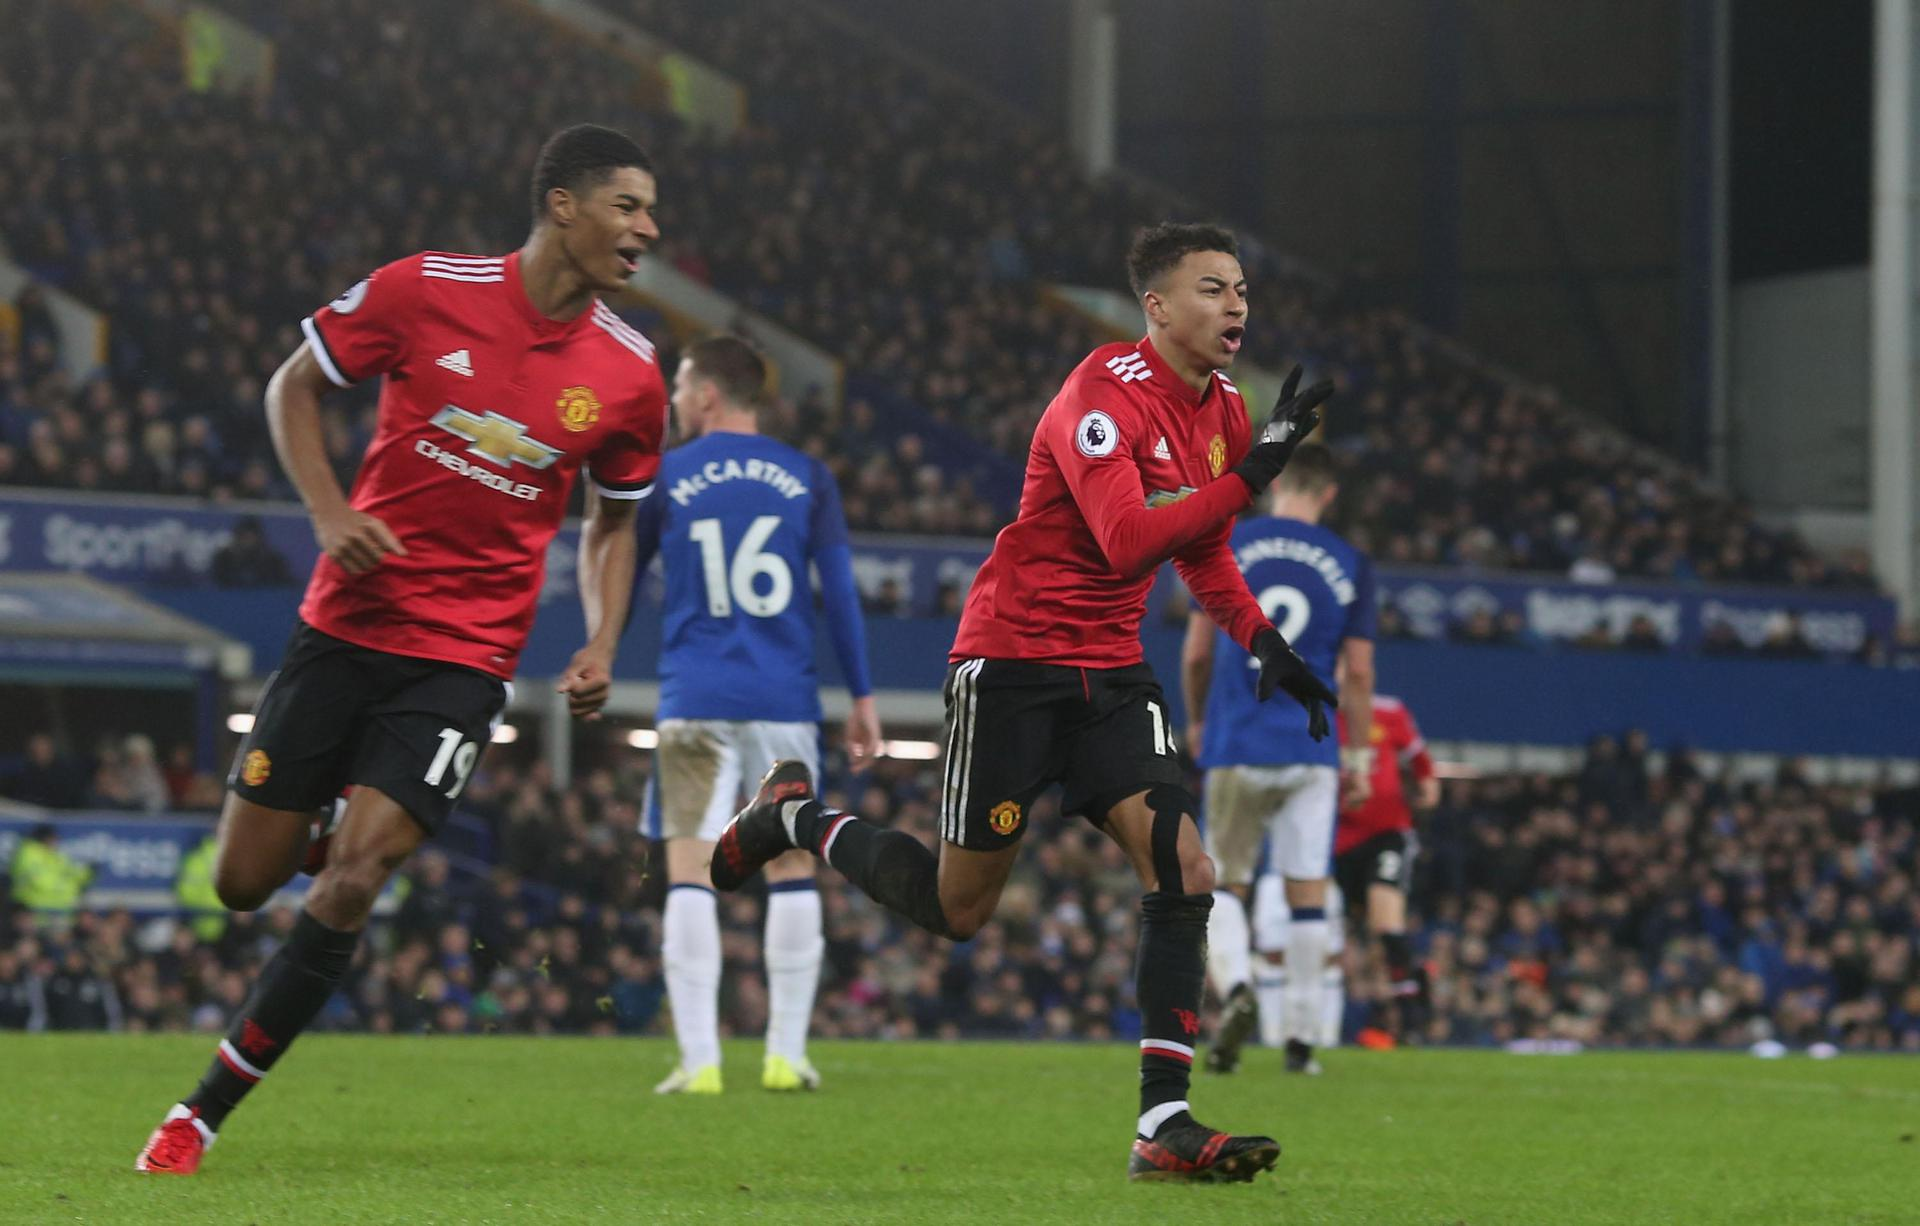 Jesse Lingard wheels away in delight after scoring United's second goal against Everton